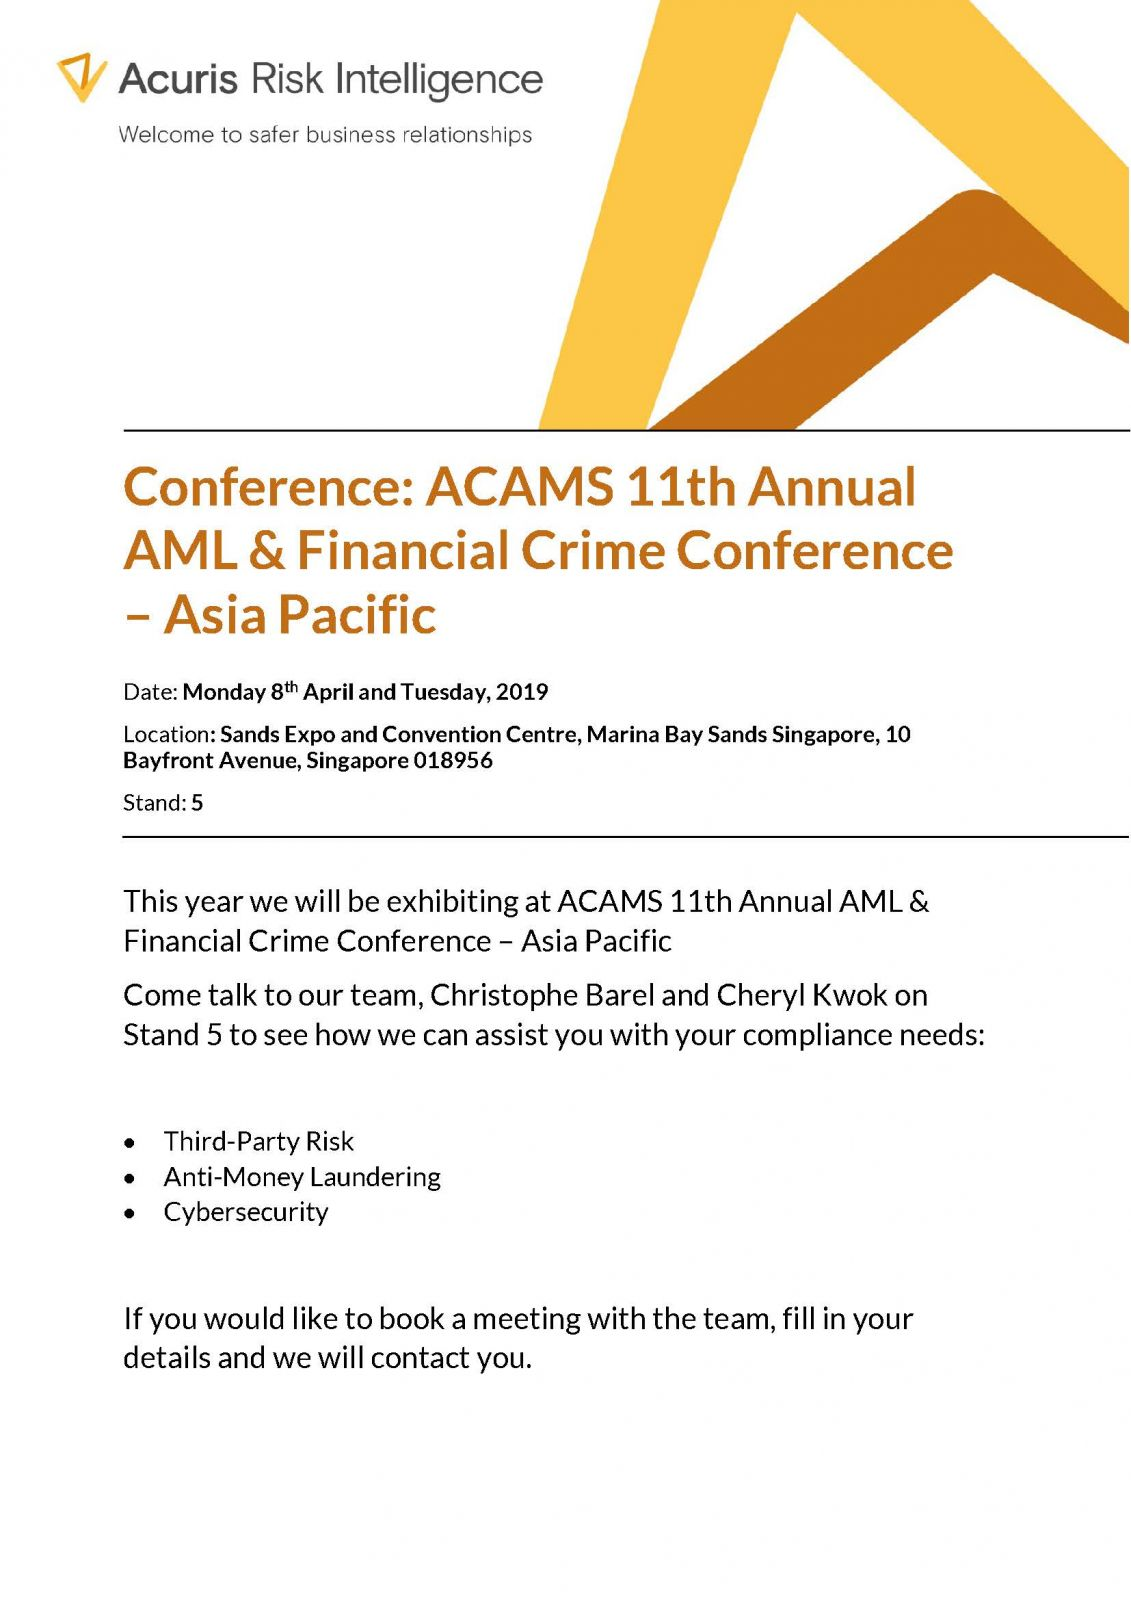 Conference: ACAMS 11th Annual AML & Financial Crime Conference